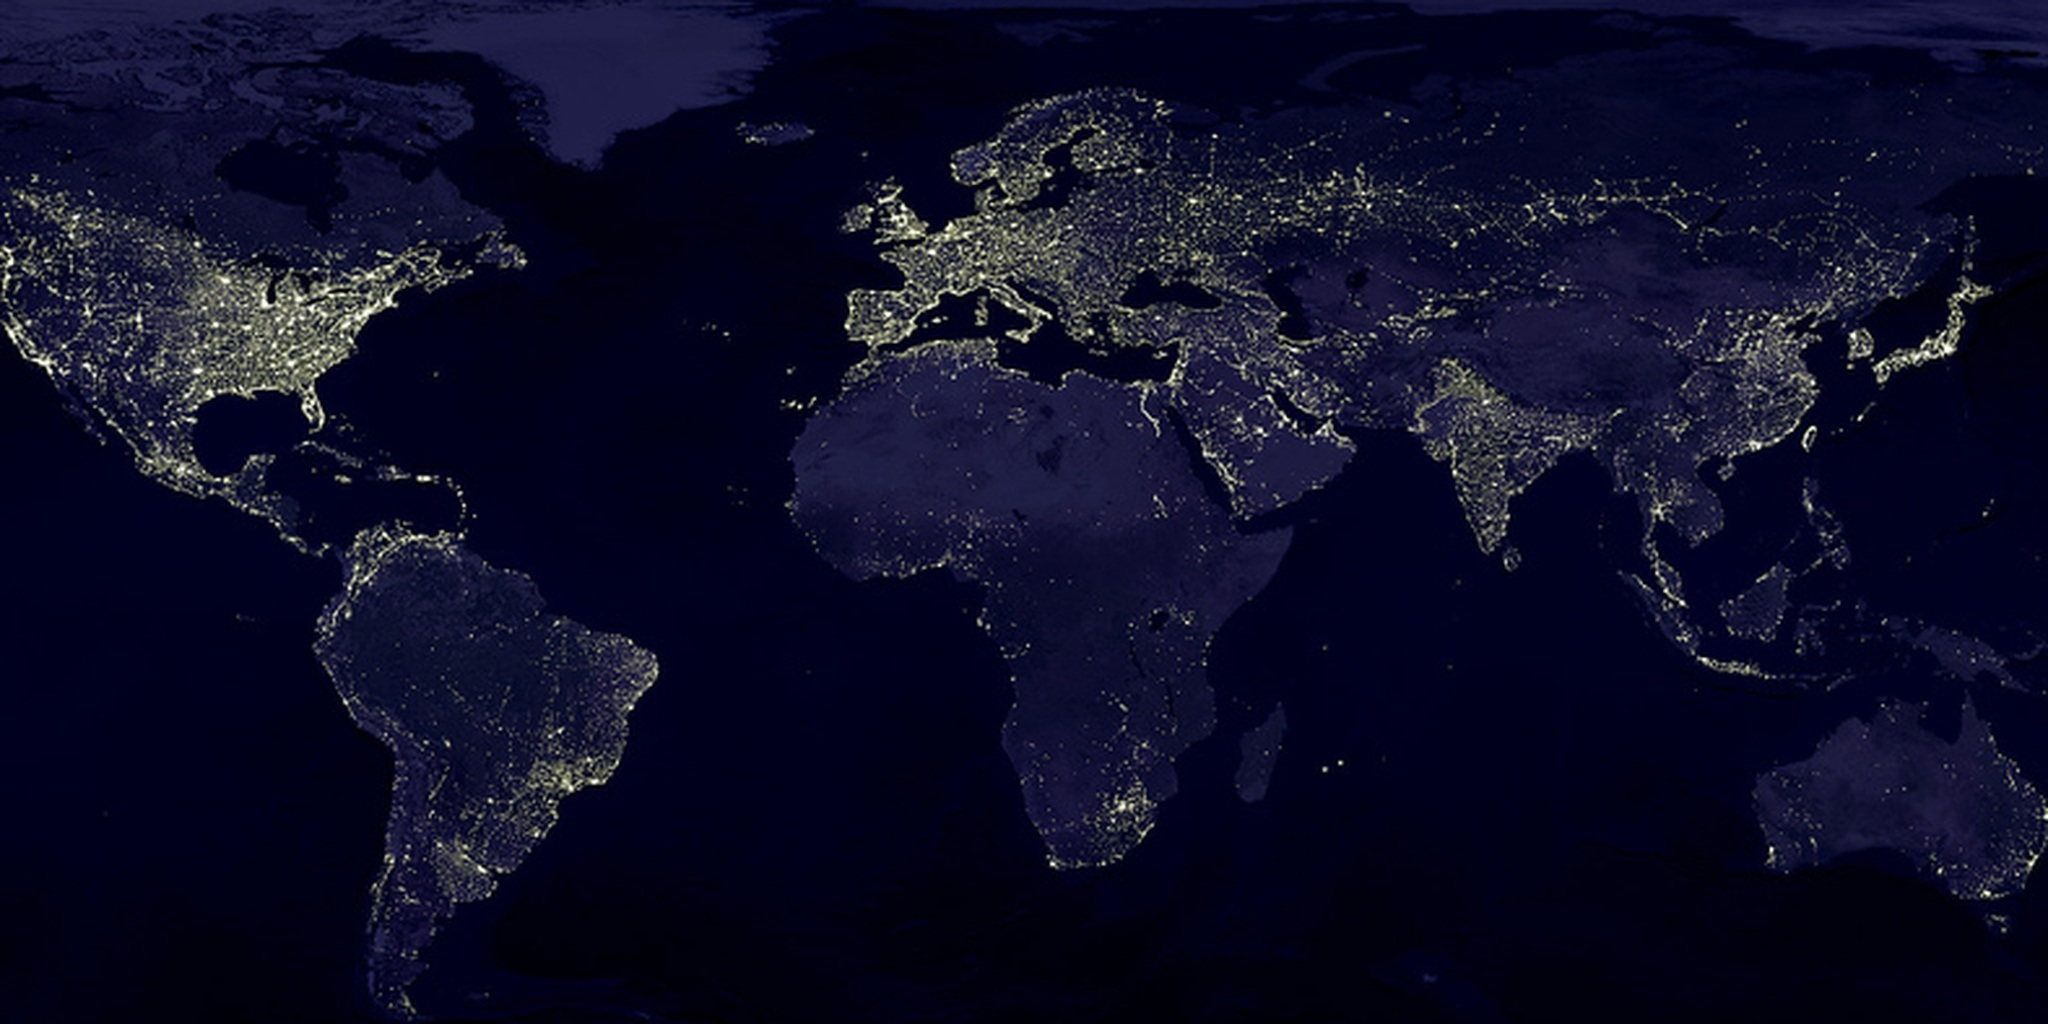 All sizes   Earth at Night   Flickr - Photo Sharing!